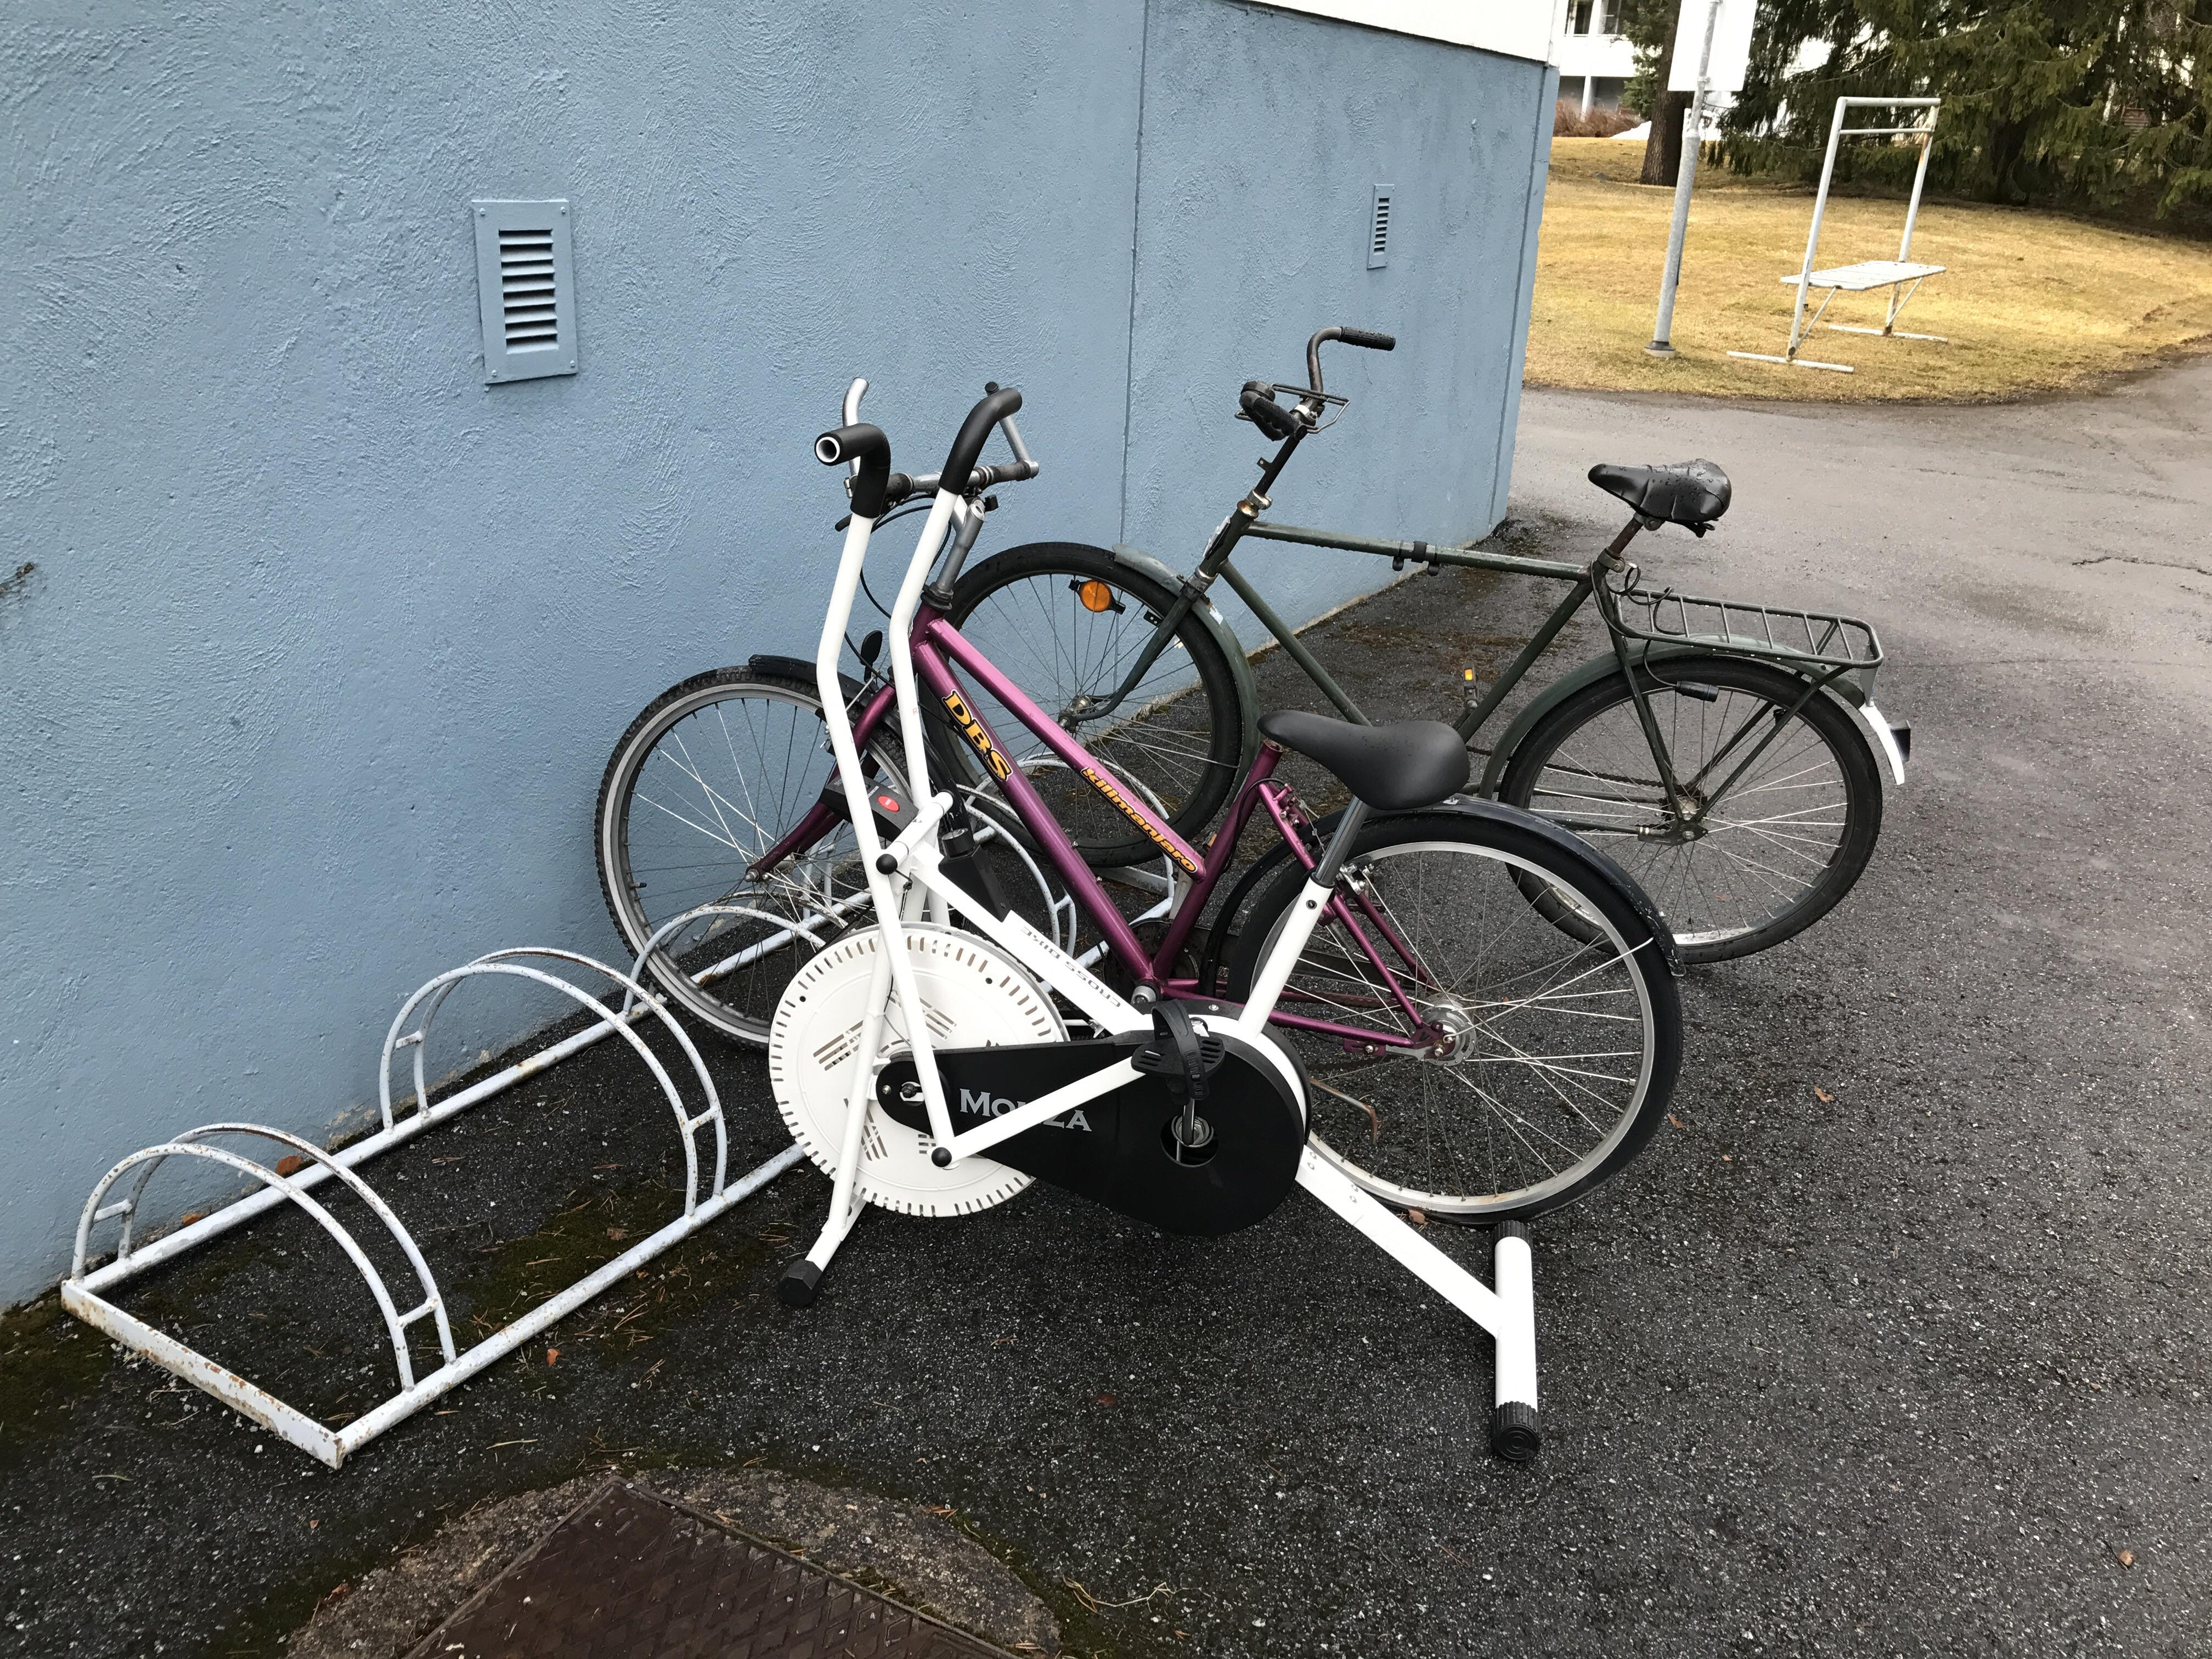 An exercise bike parked in a bike rack. : mildlyinteresting